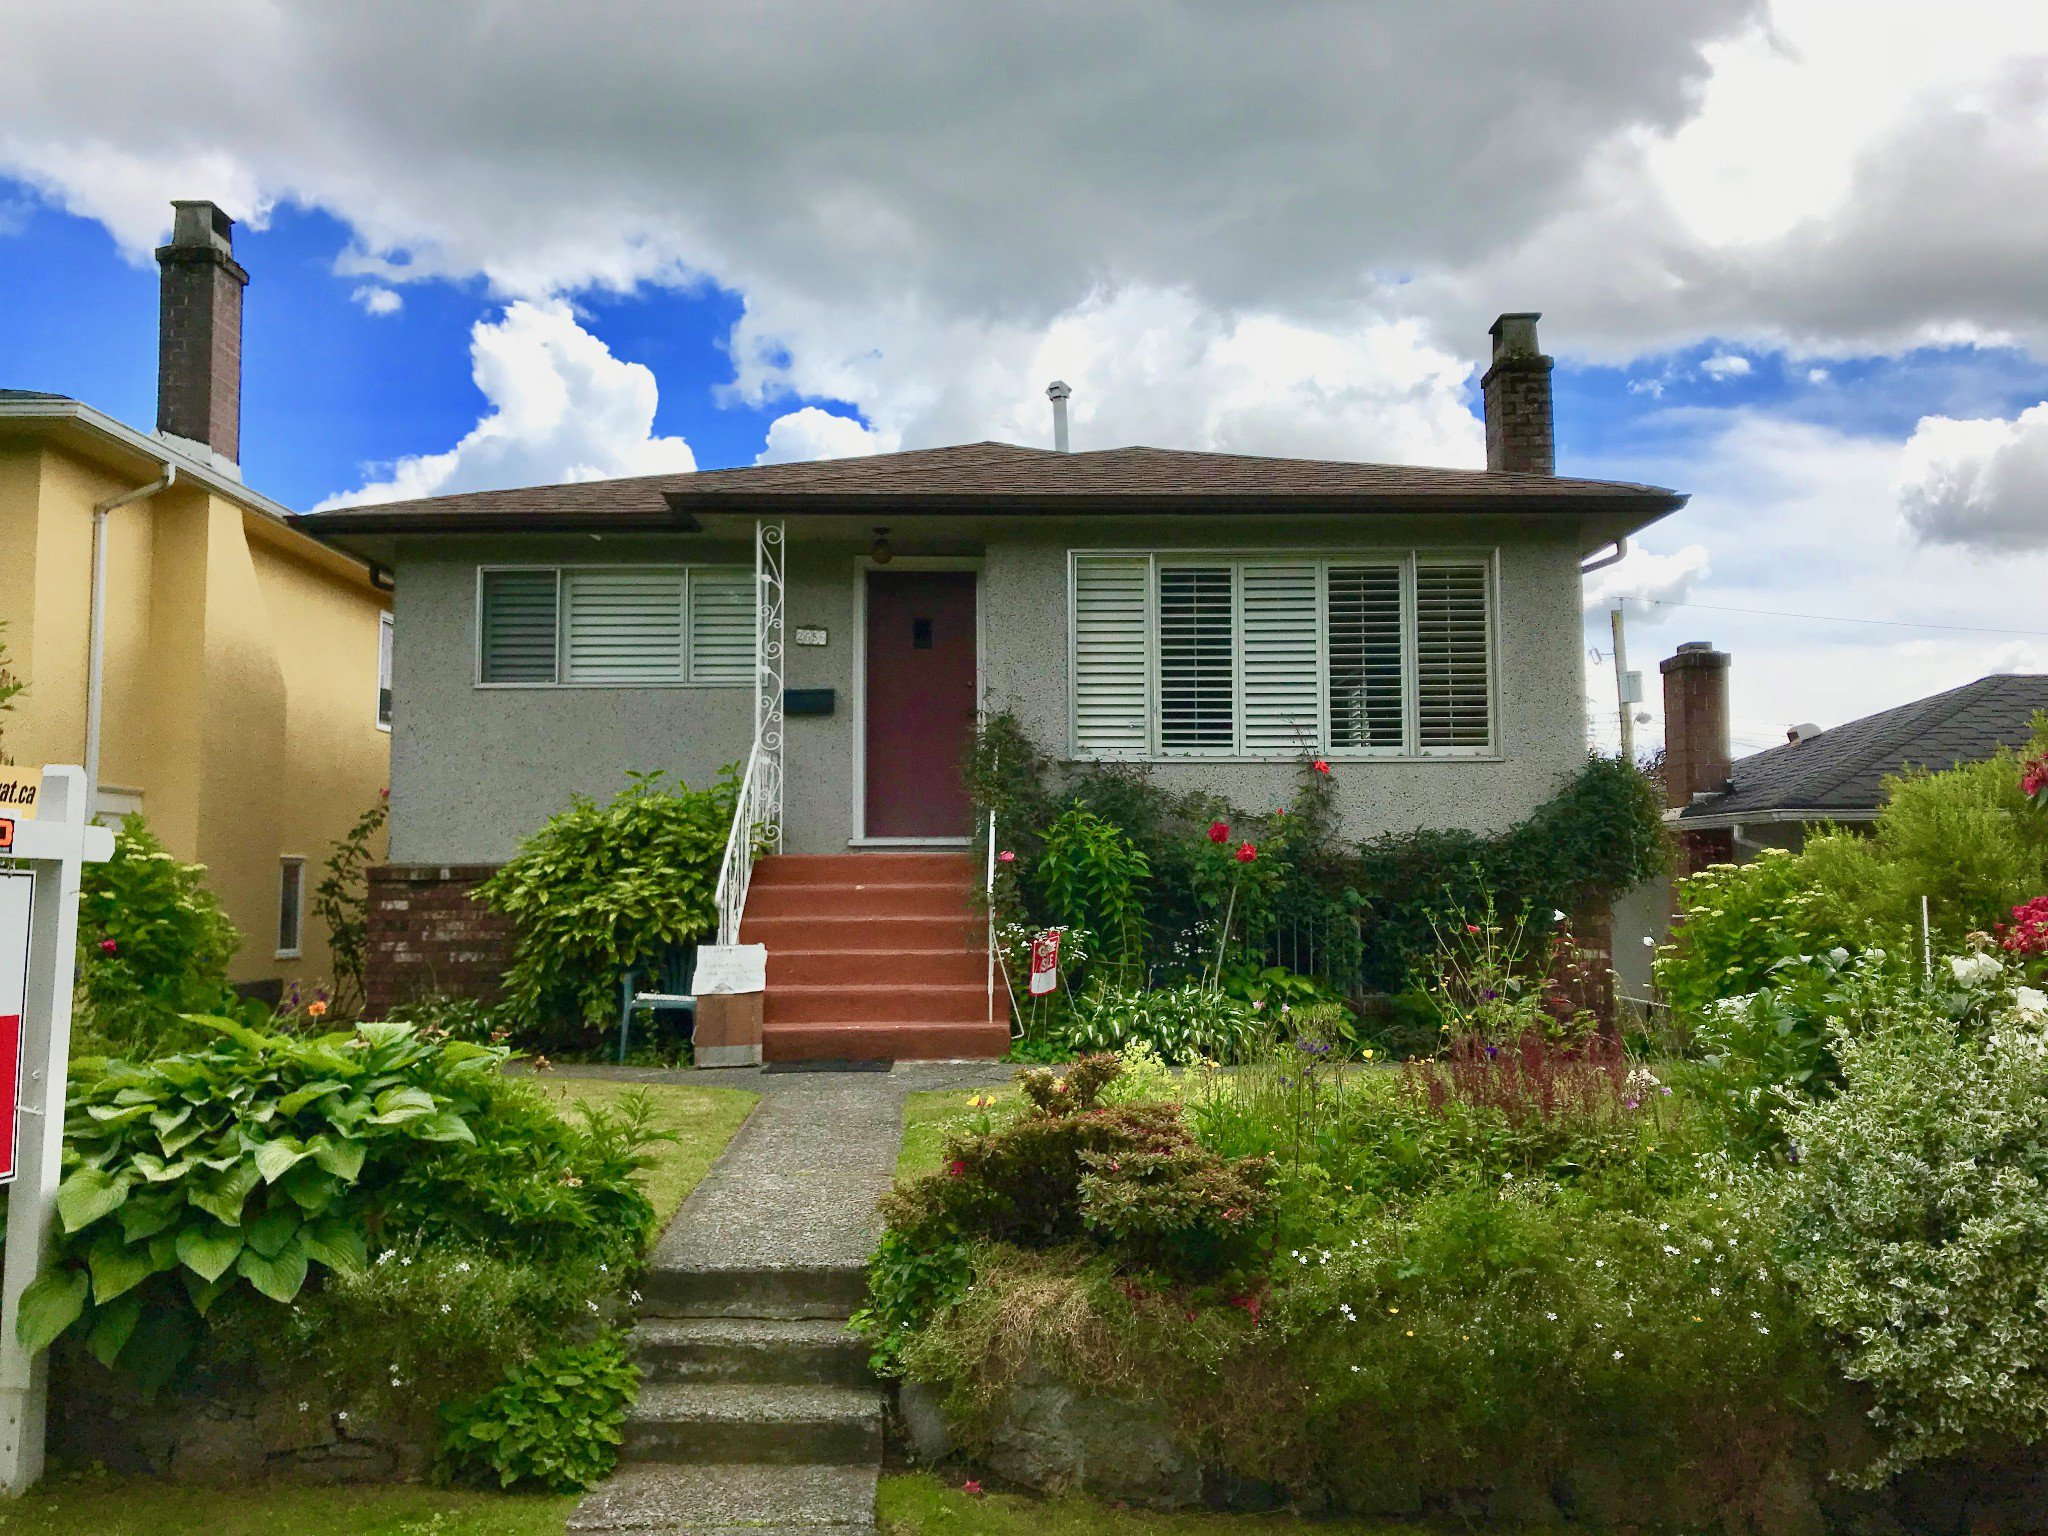 Main Photo: 2656 WAVERLEY AVENUE in Vancouver: Killarney VE House for sale (Vancouver East)  : MLS®# R2247703